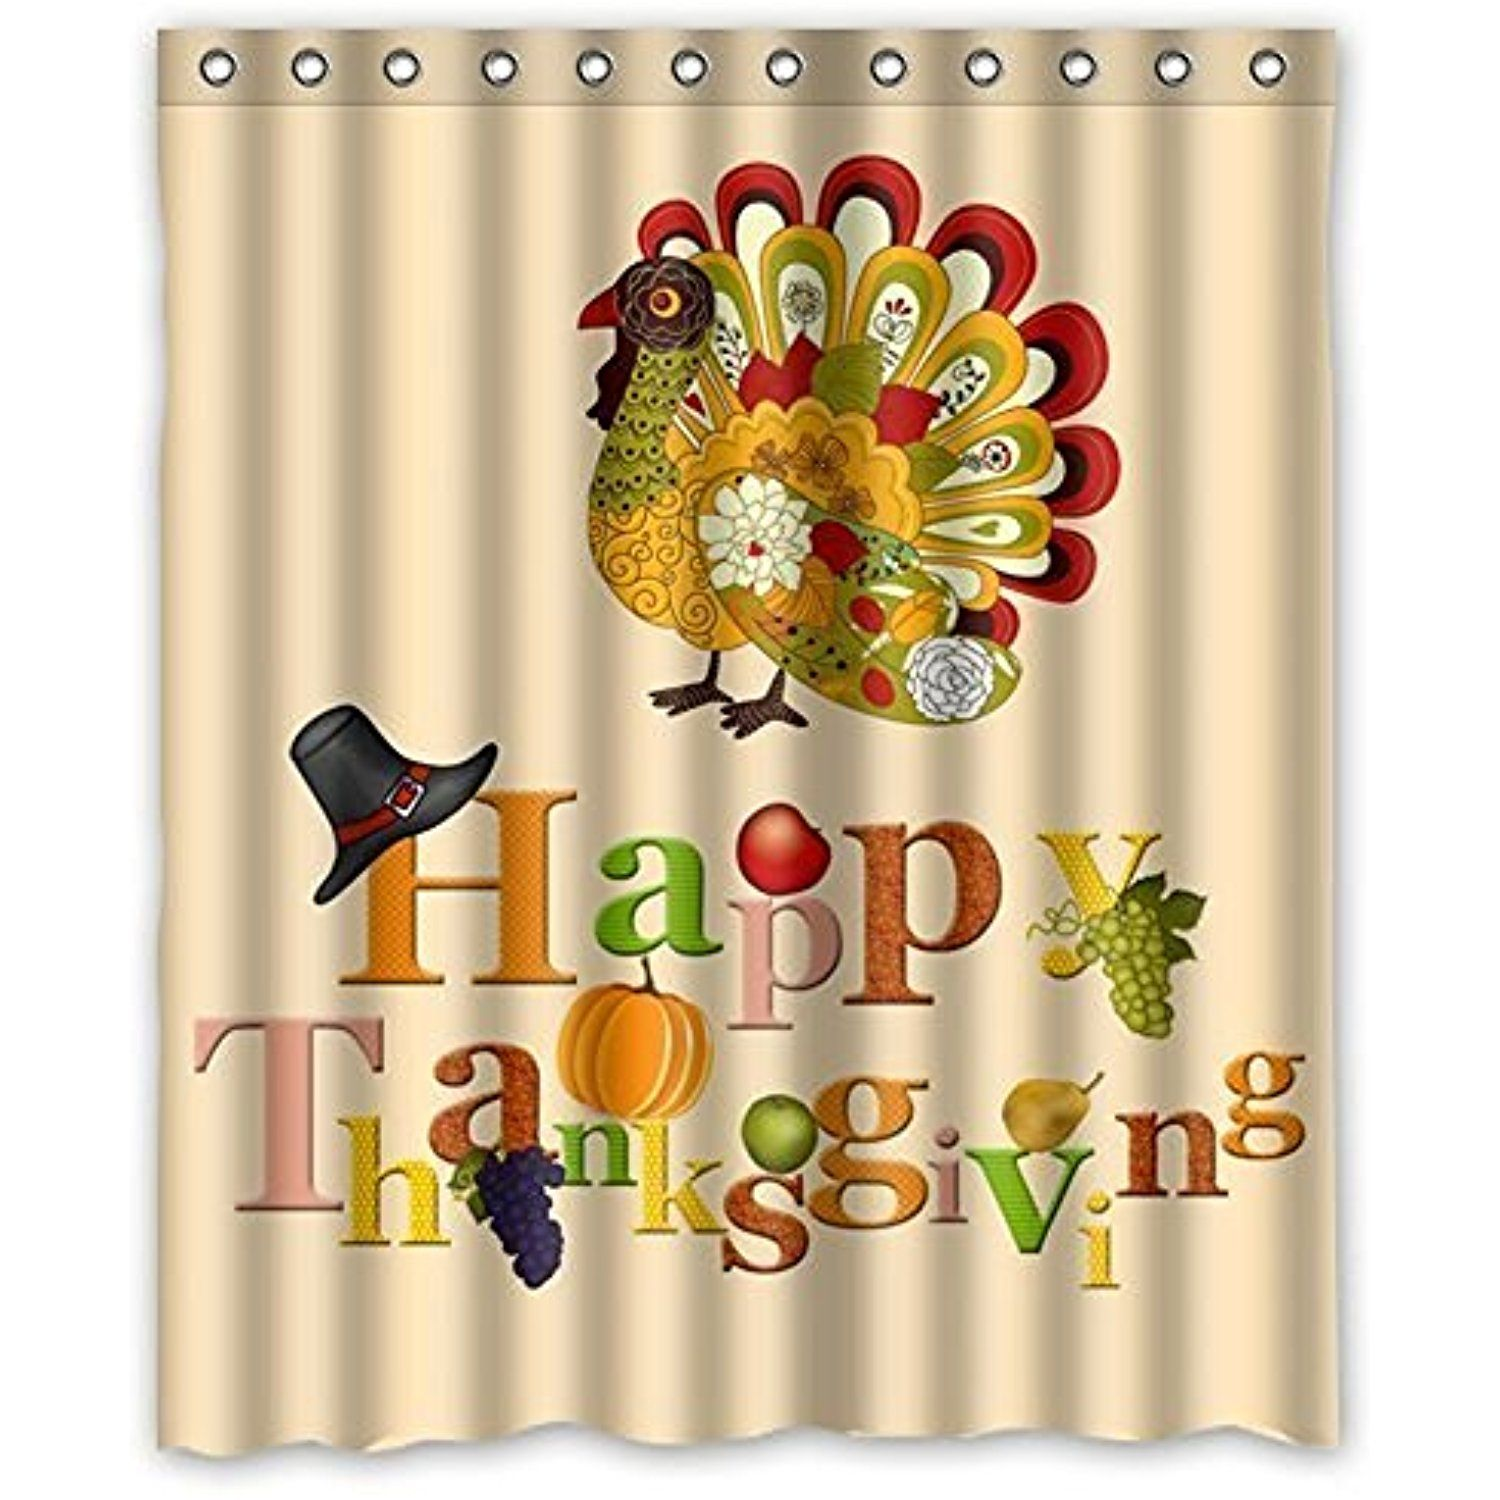 Family Decor Colorful Art Turkey Happy Thanksgiving Day Waterproof Bathroom Fabric Showe Custom Shower Curtains Happy Thanksgiving Day Shower Curtain Polyester